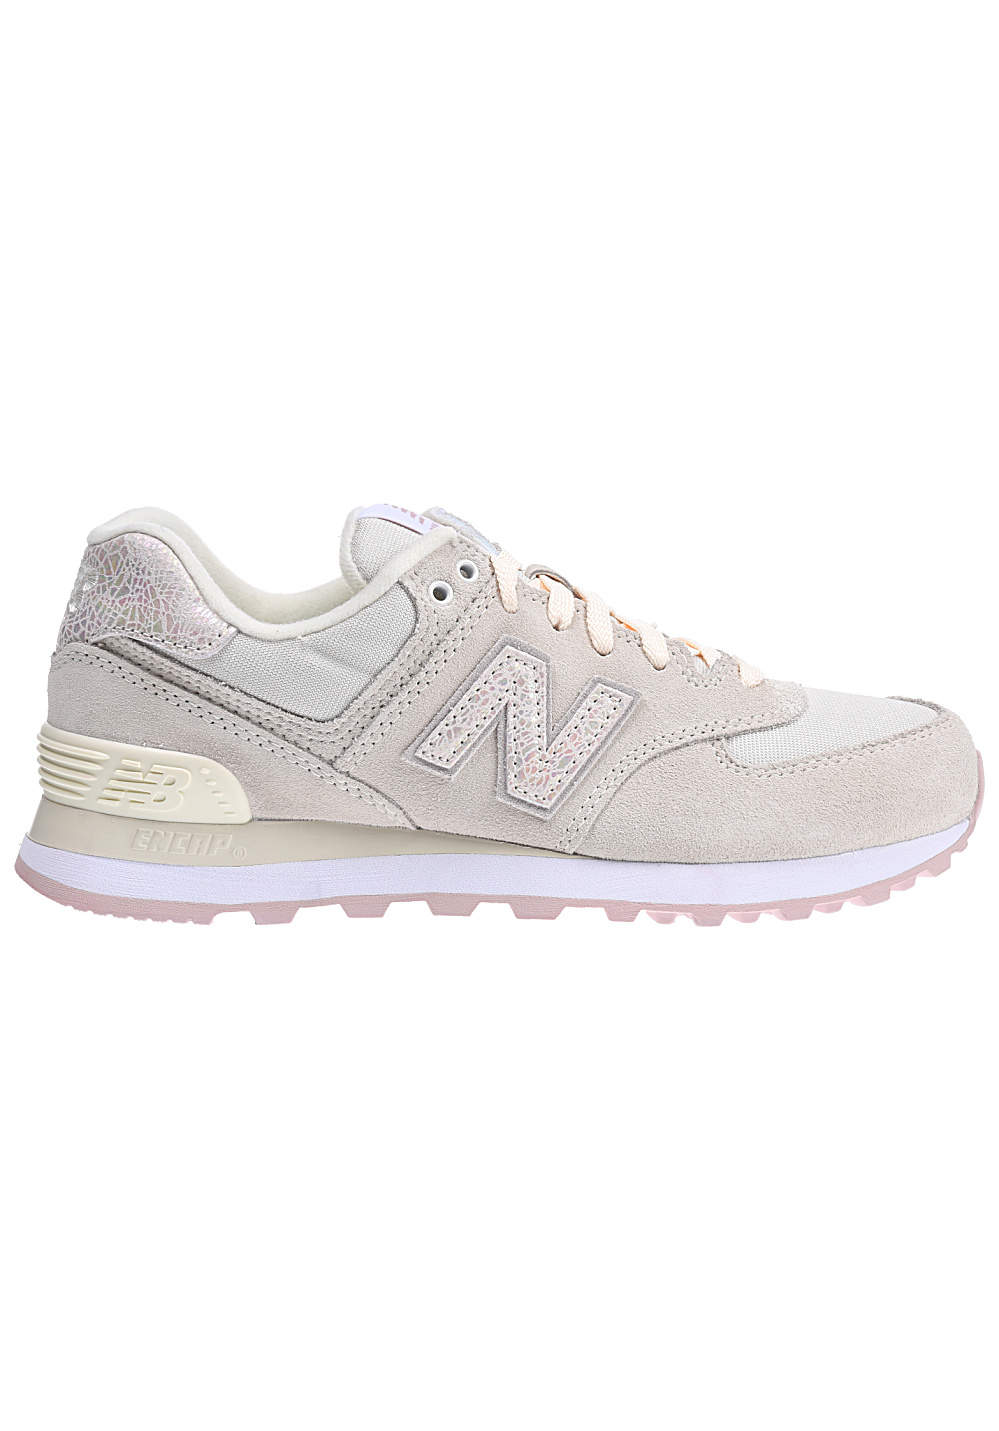 NEW BALANCE WL574 B Sneakers for Women Beige